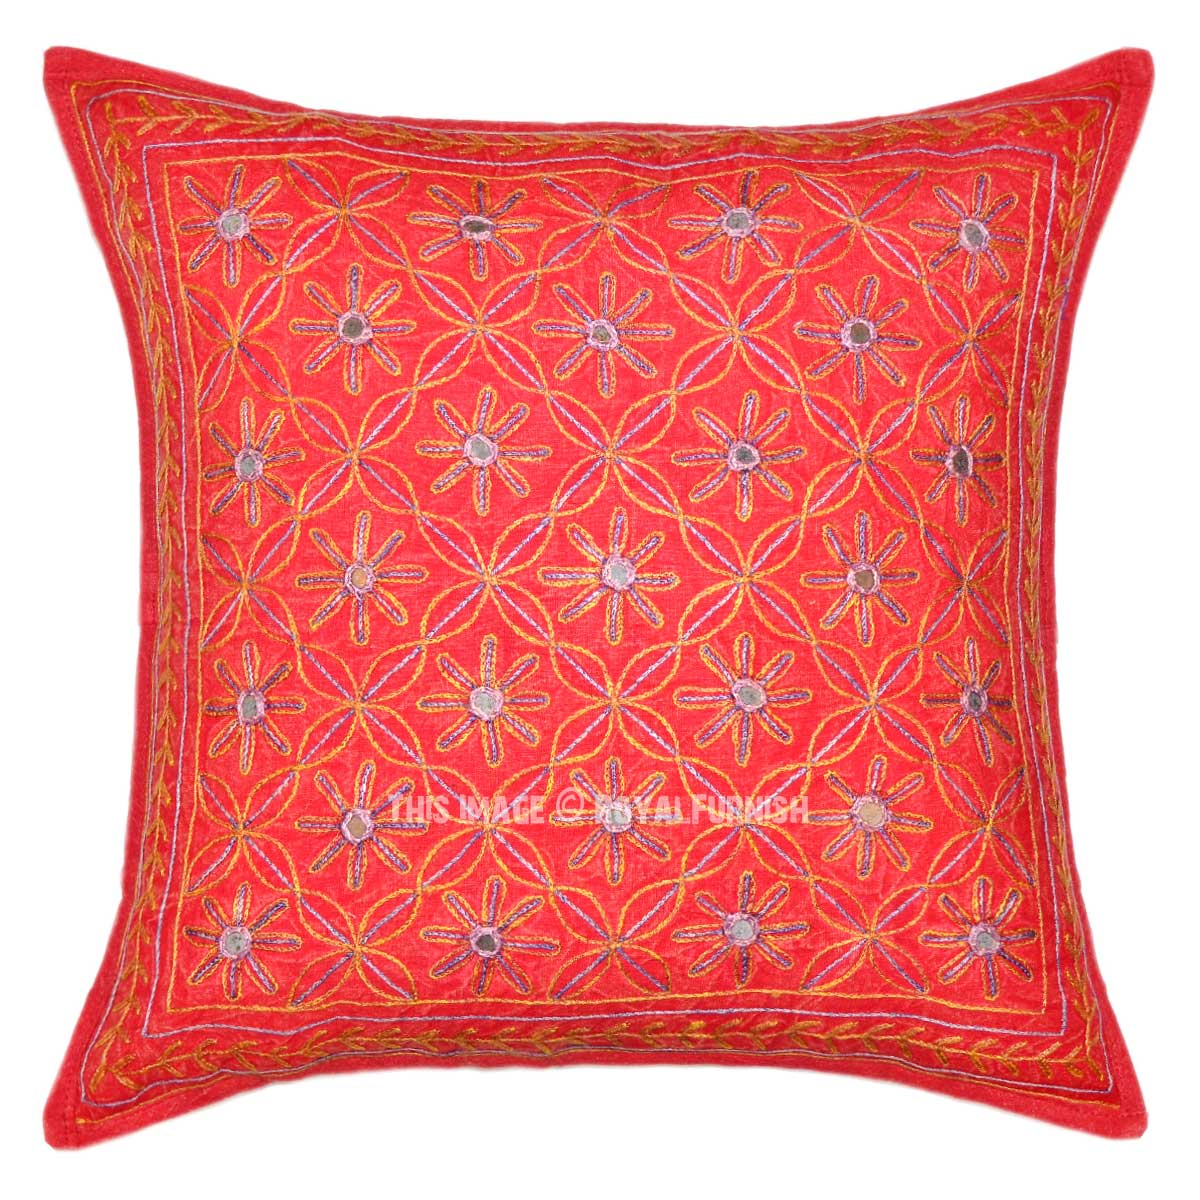 Embroidered Throw Pillow Covers : Red 16X16 Decorative One-Of-A-Kind Unique Embroidered Pillow Cover - RoyalFurnish.com